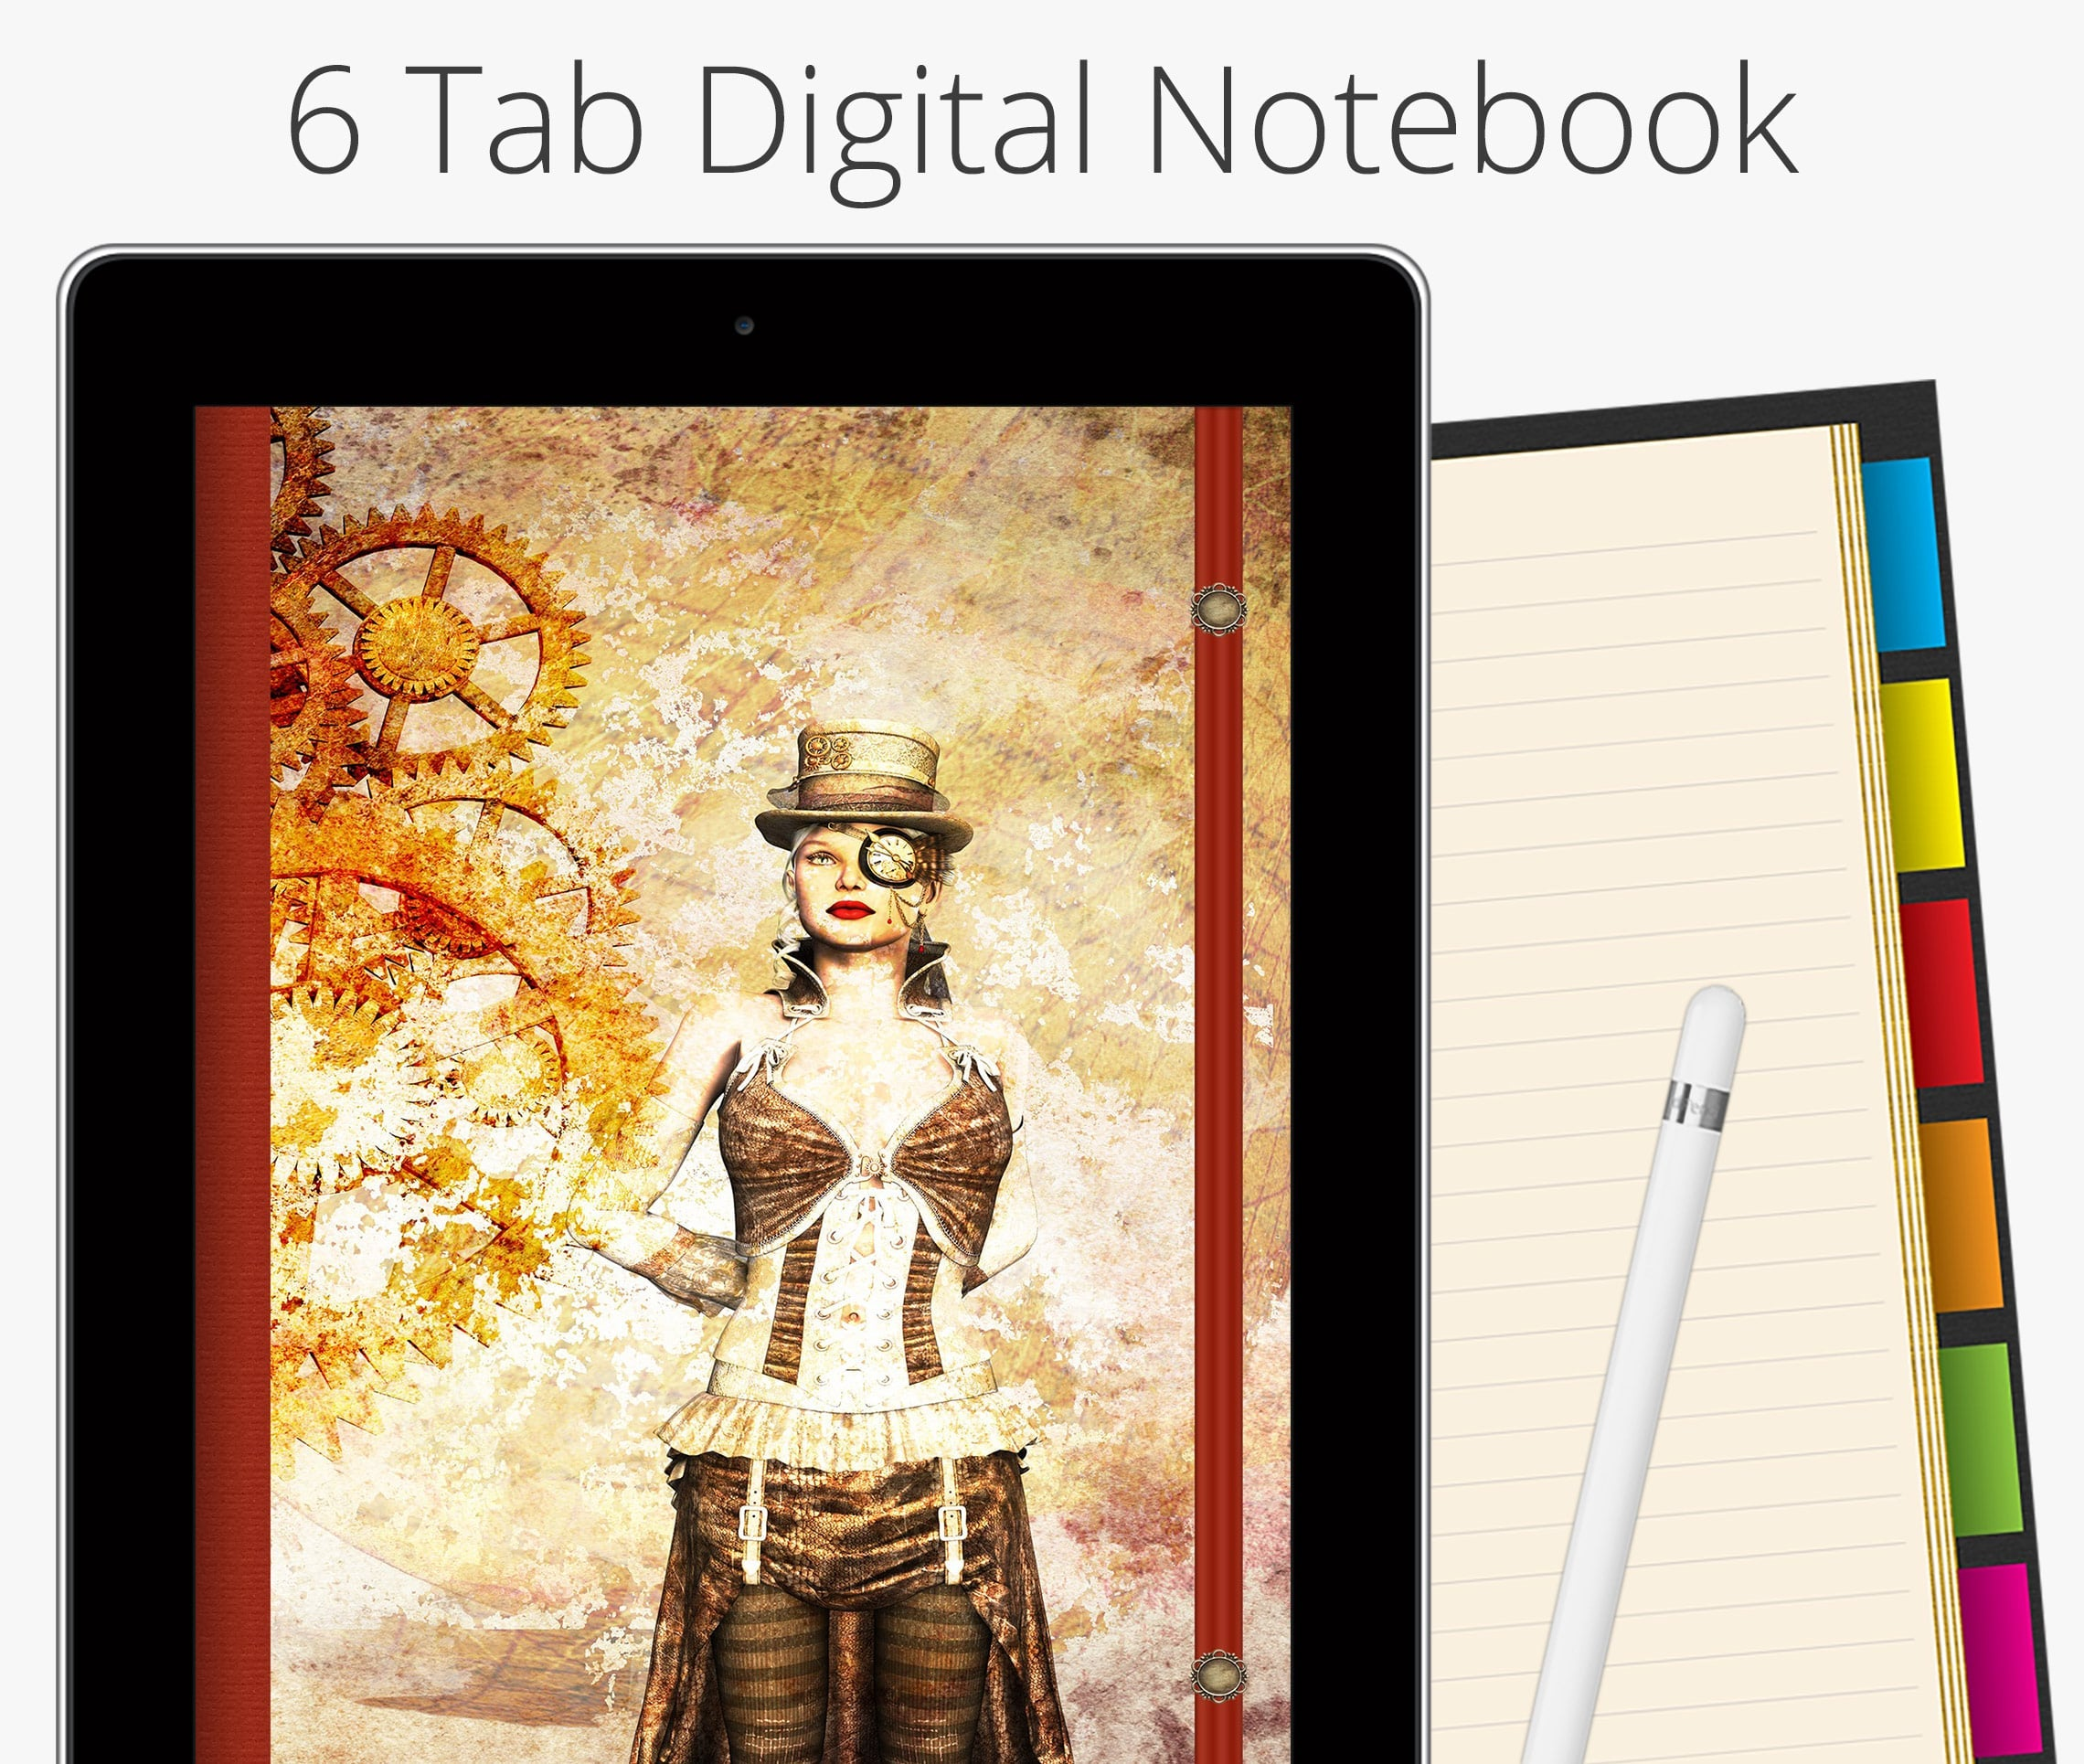 6 Tab Digital Notebook, Steampunk